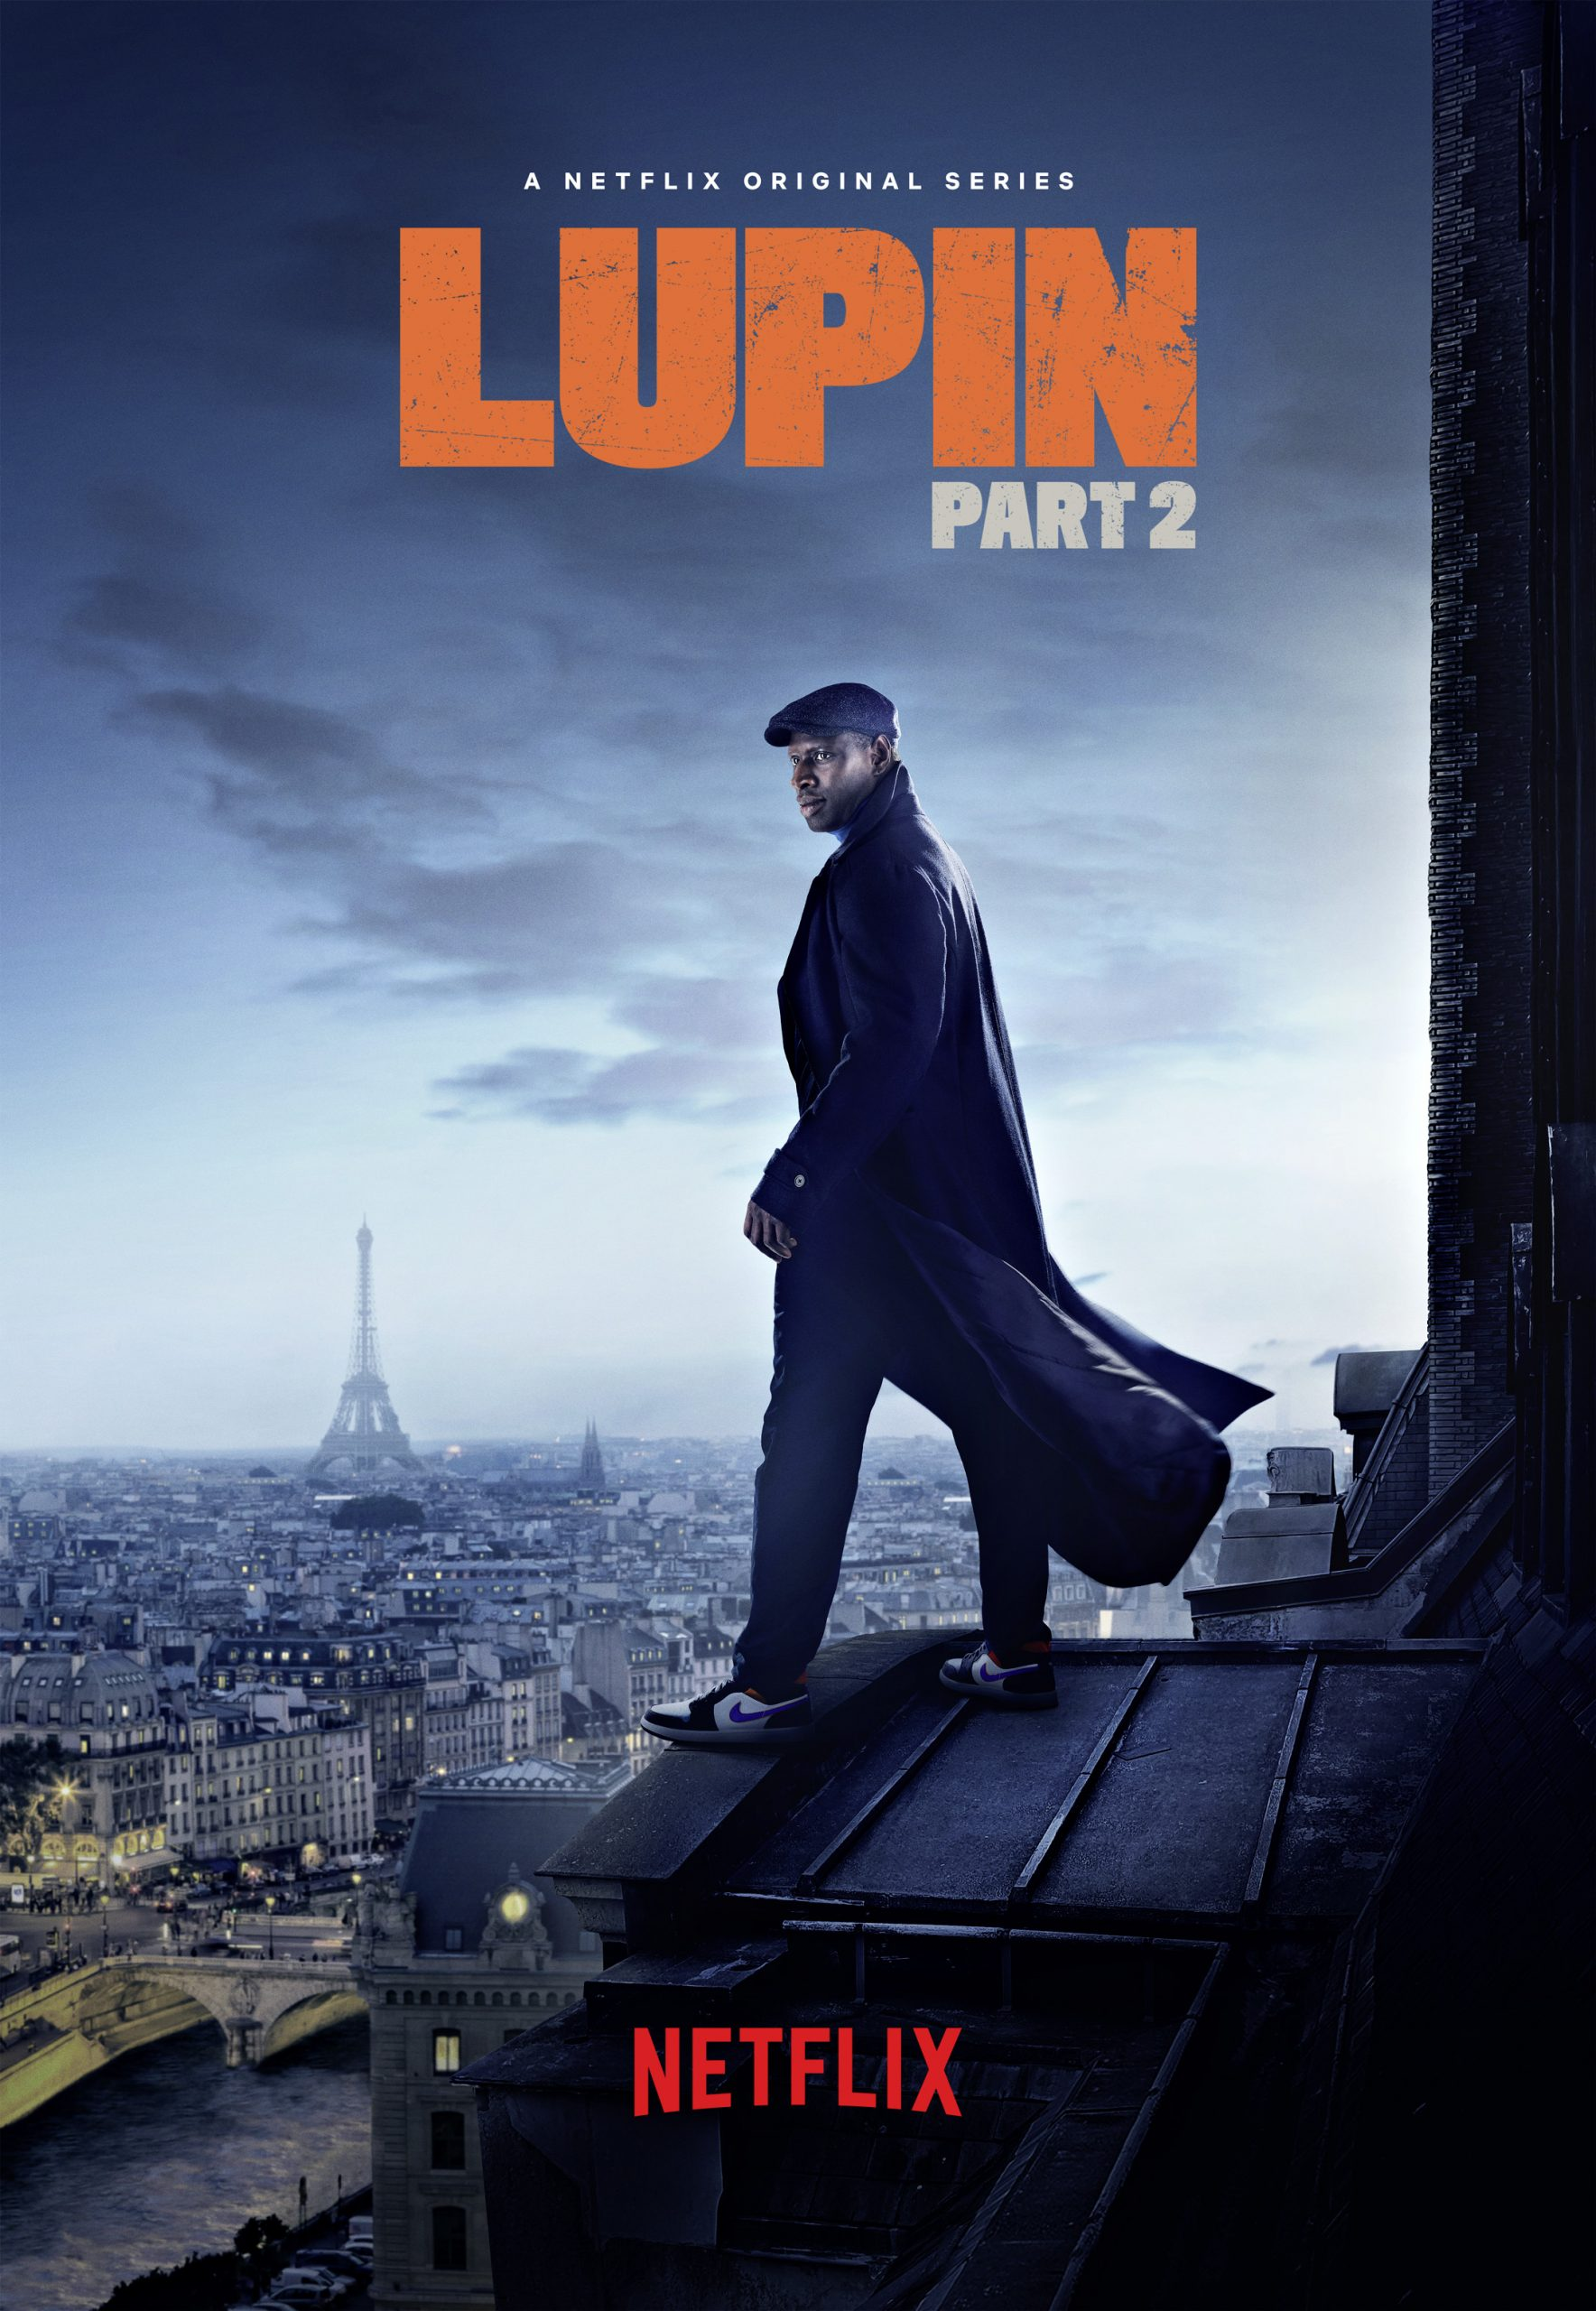 First Look: Netflix's Lupin Part 2 Starring Omar Sy